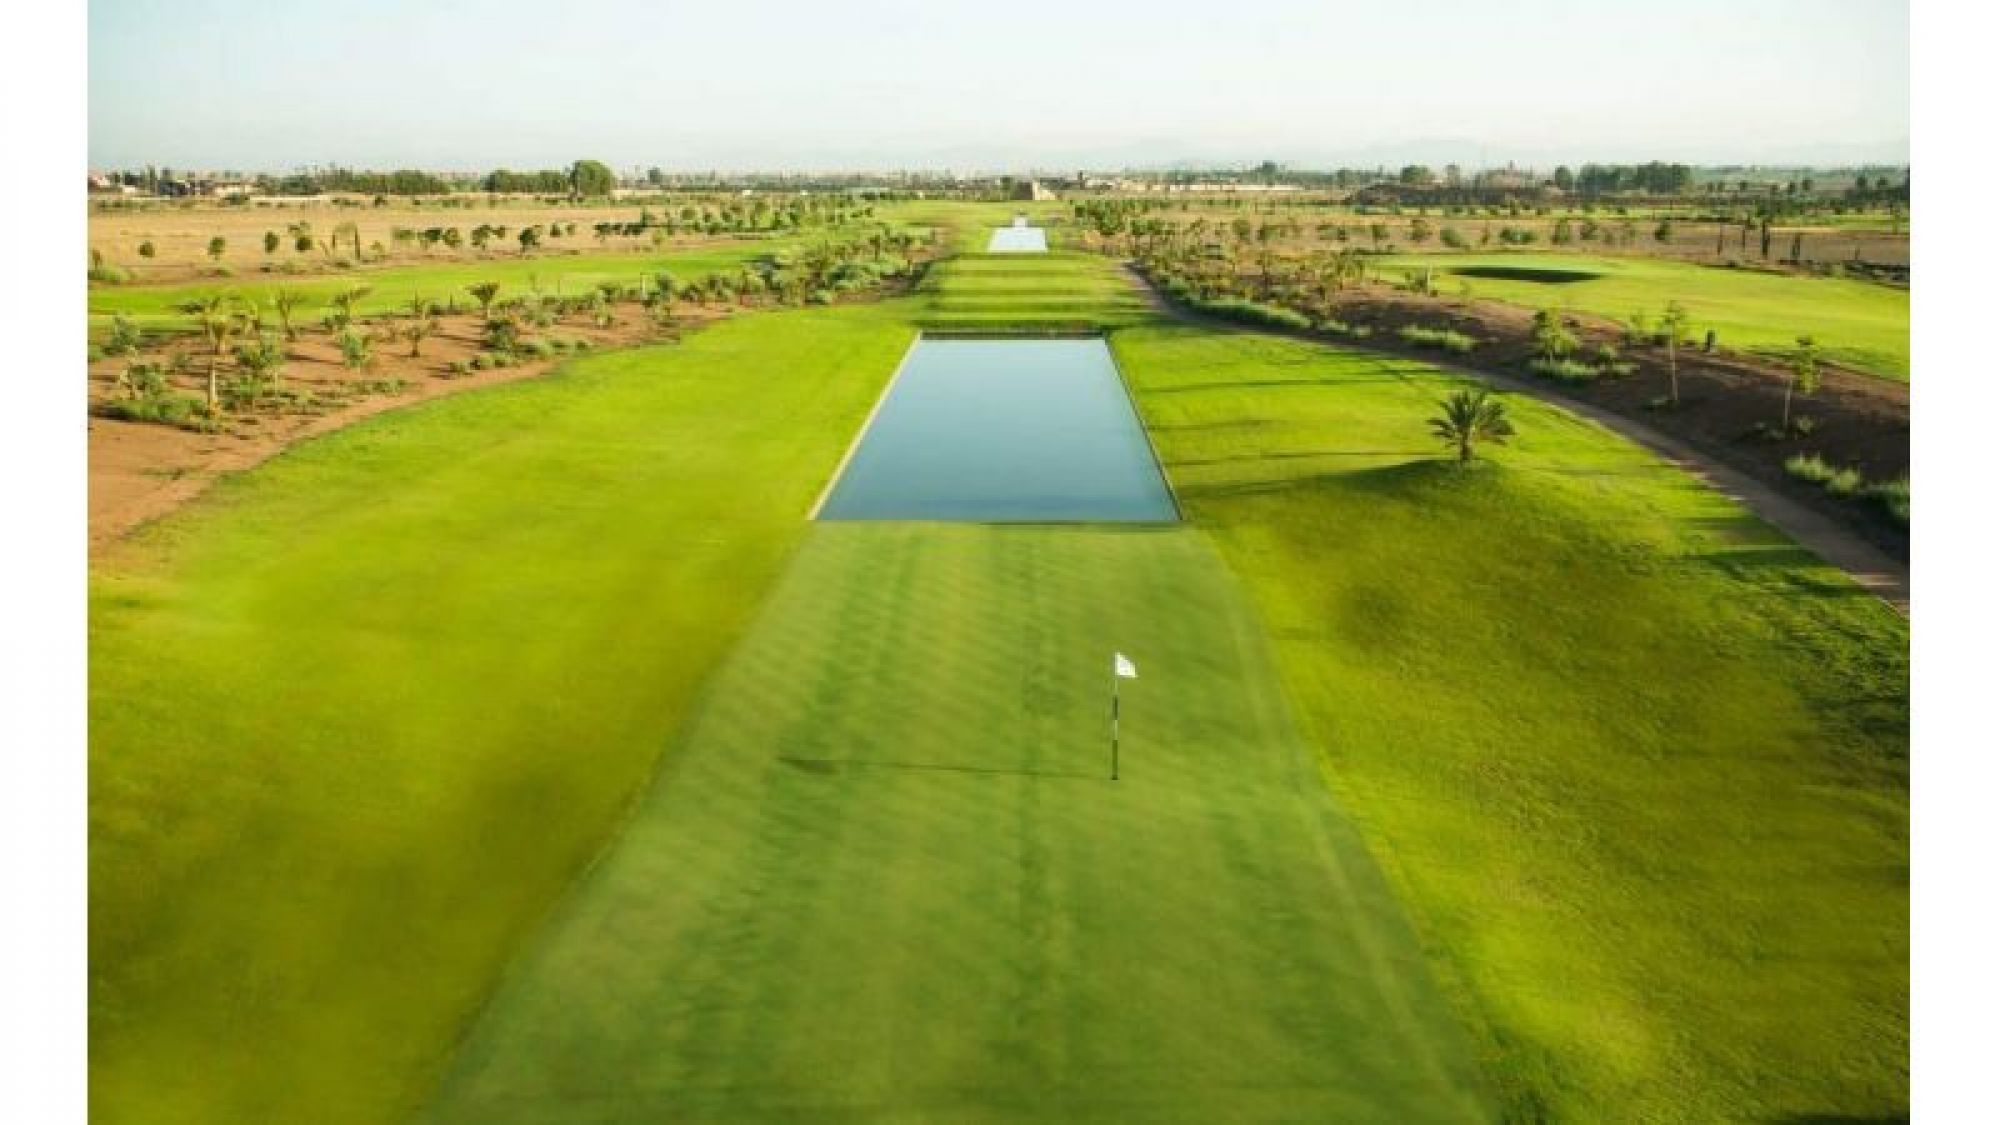 Noria Golf Club Marrakech consists of lots of the finest golf course near Morocco